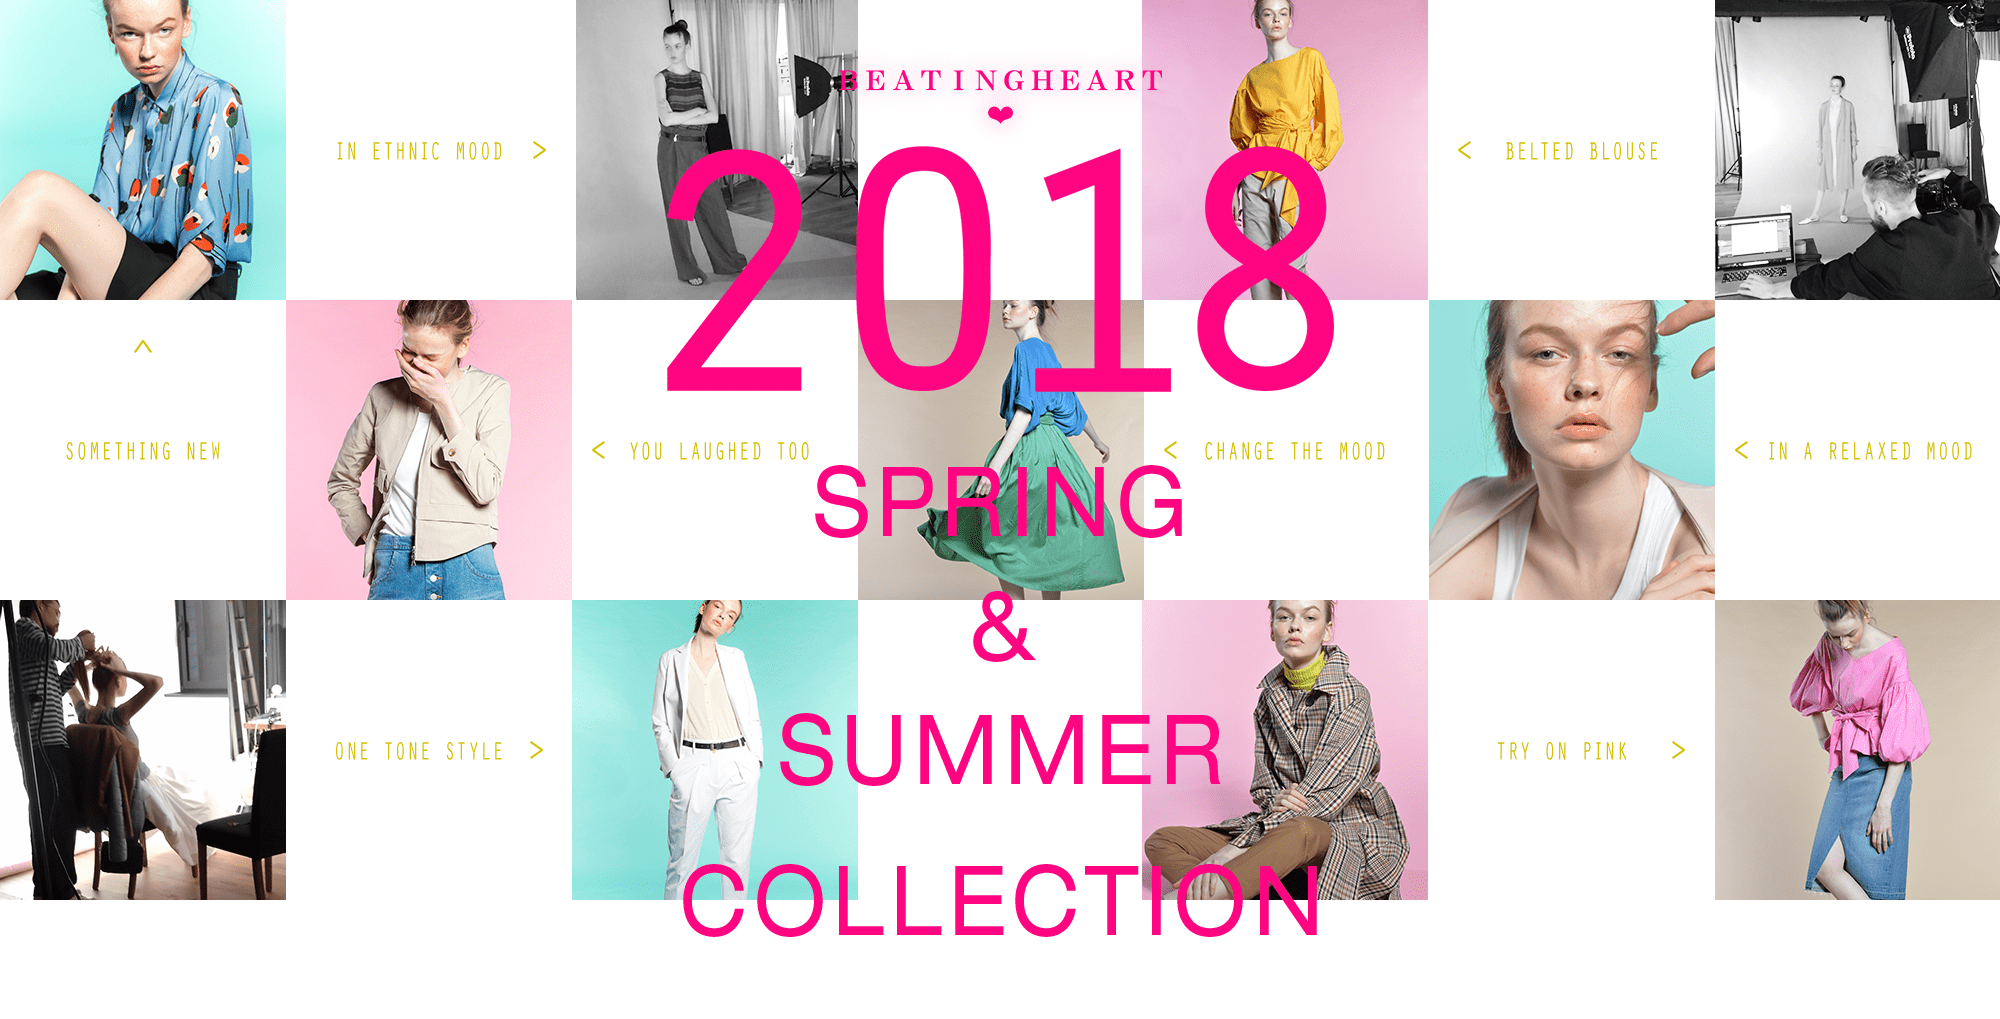 BEATING HEART 2018 SPRING & SUMMER COLLECTION